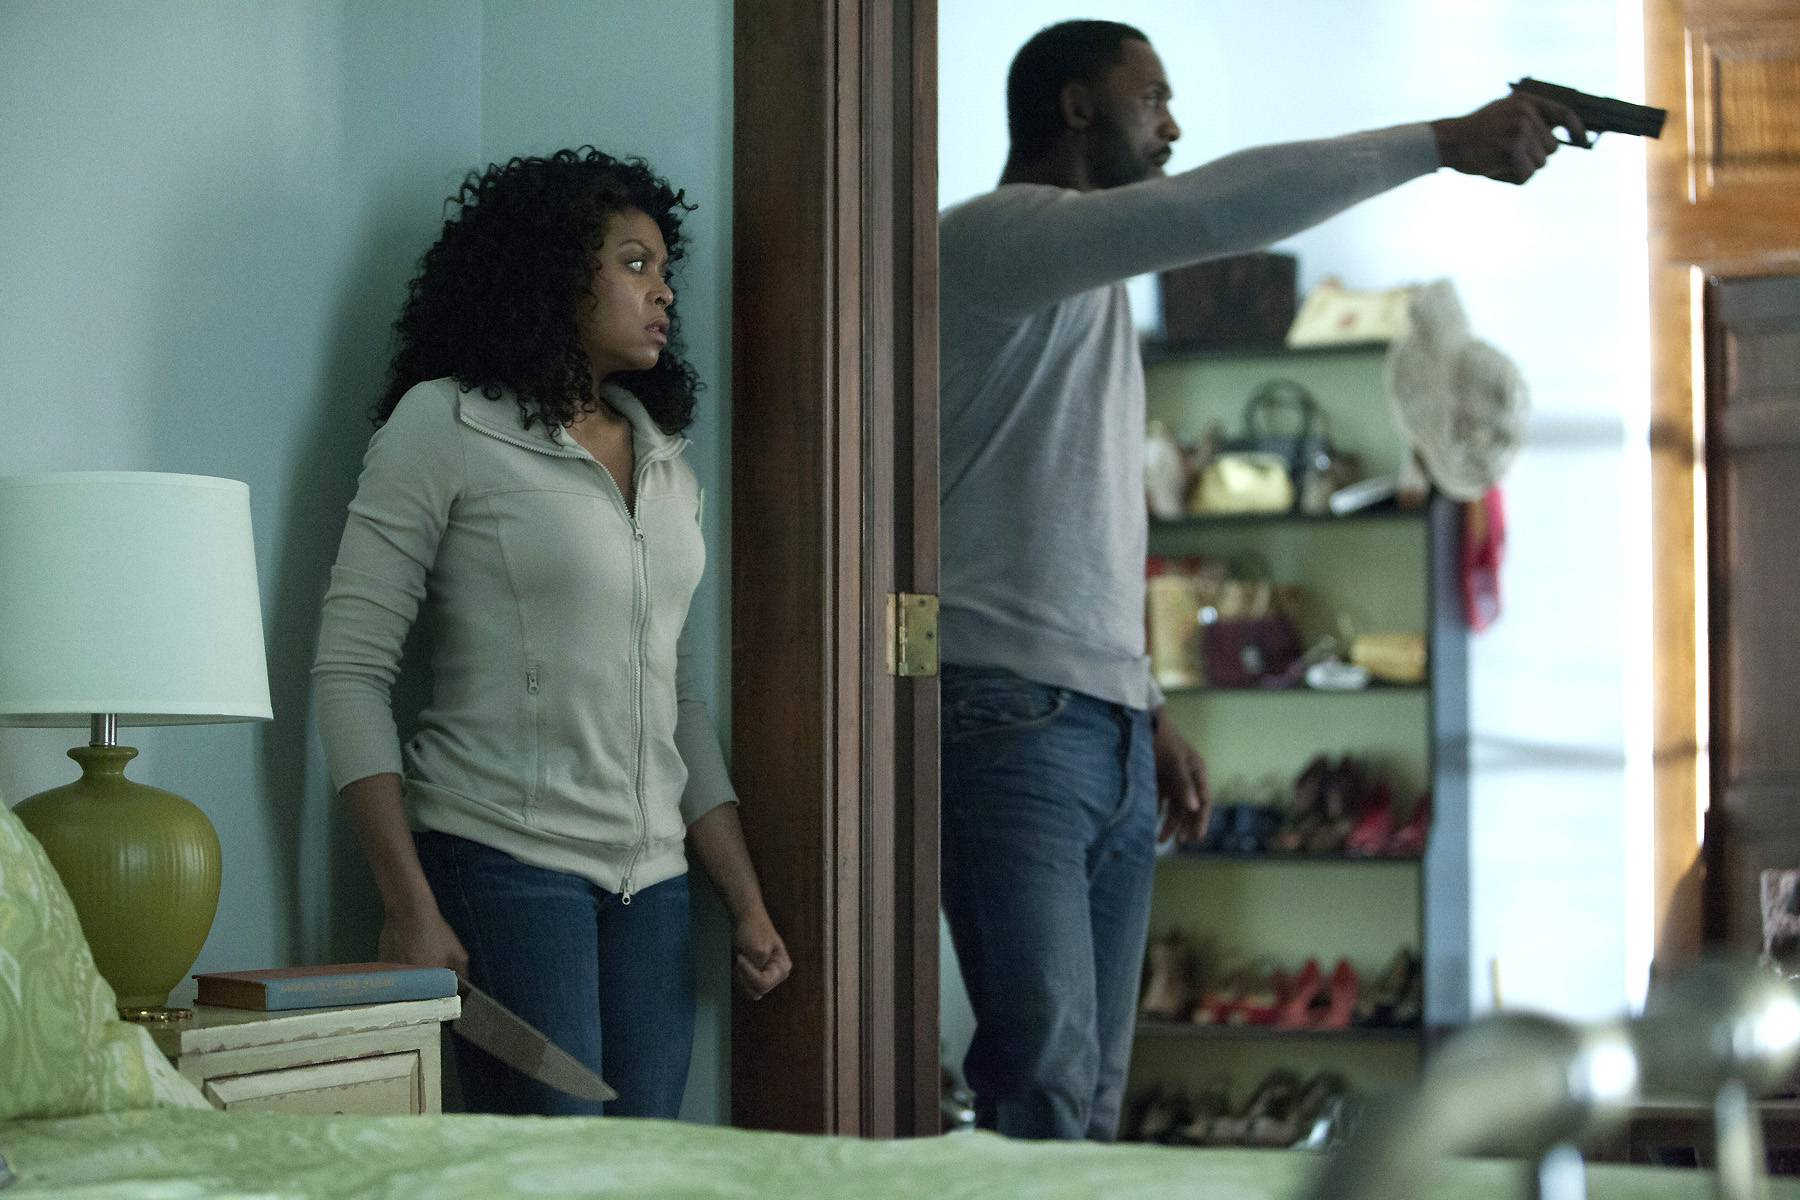 No Good Deed Wins at the Box Office - No Good Deed landed at the No. 1 spot at the box office revenue. The thriller grossed about $24 million, according to reports, while it was produced on a $13.8 million budget. Will Packer scores again! (Photo: Screen Gems)